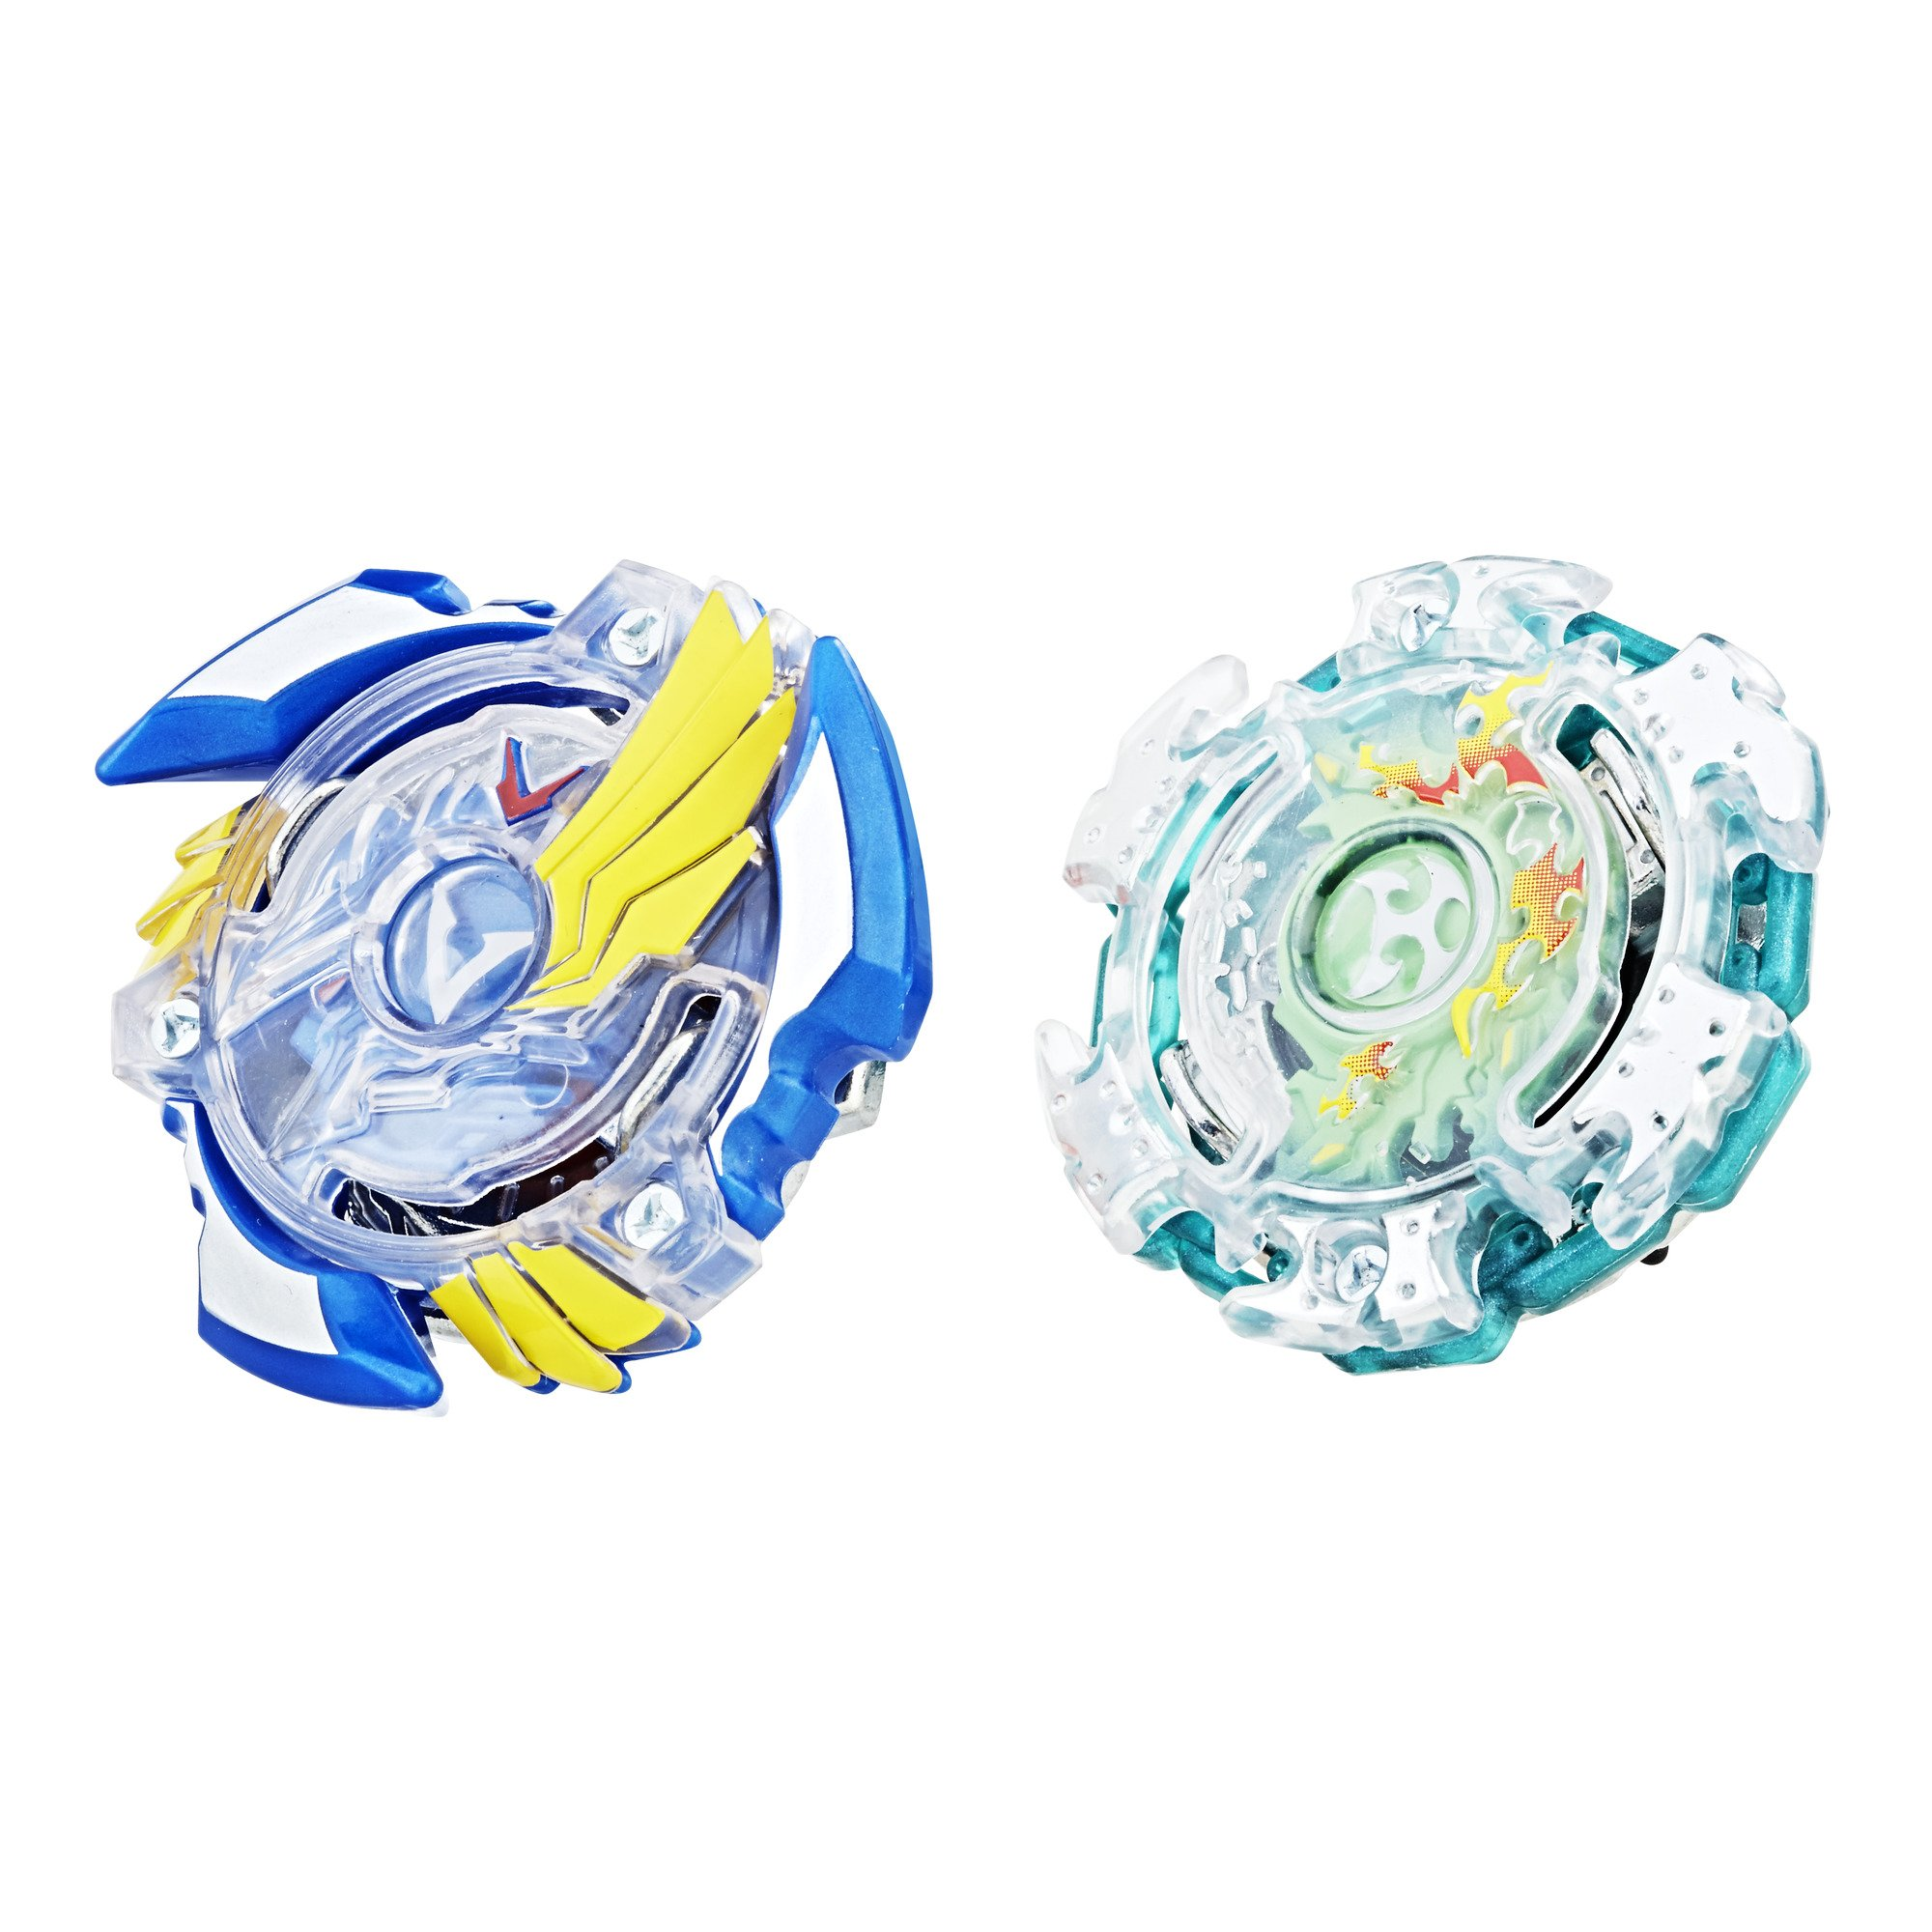 BEYBLADE Burst Avatar Attack Battle Set (Amazon Exclusive) by BEYBLADE (Image #2)